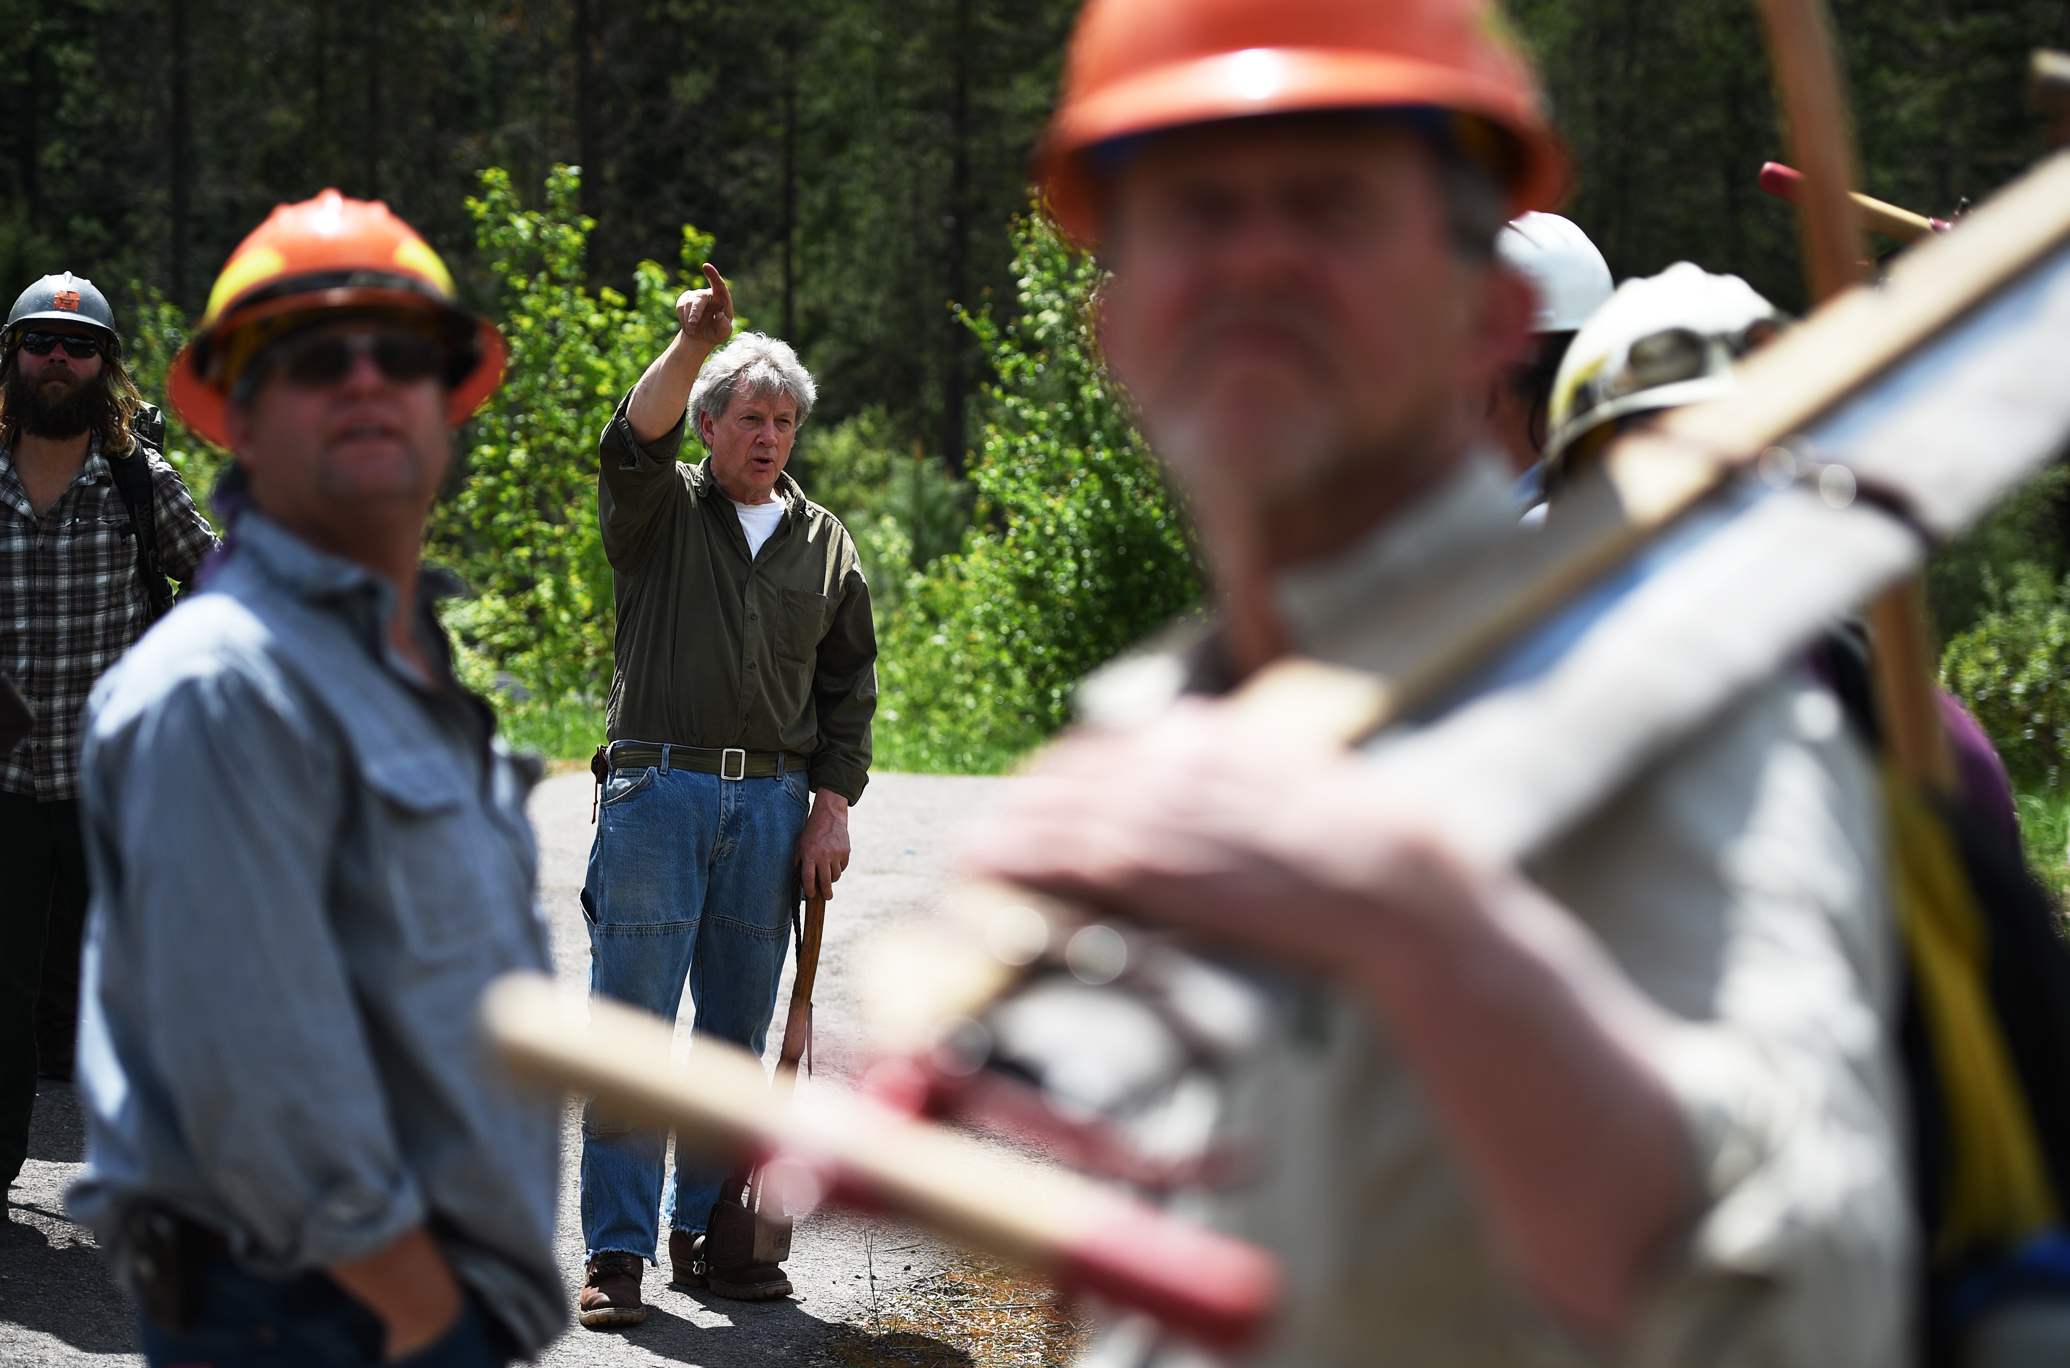 Bob Beckley, center, gives a lecture to the students of the traditional skills course prior to the start of their first field outing recently in the Nez Perce - Clearwater National Forest in Idaho.